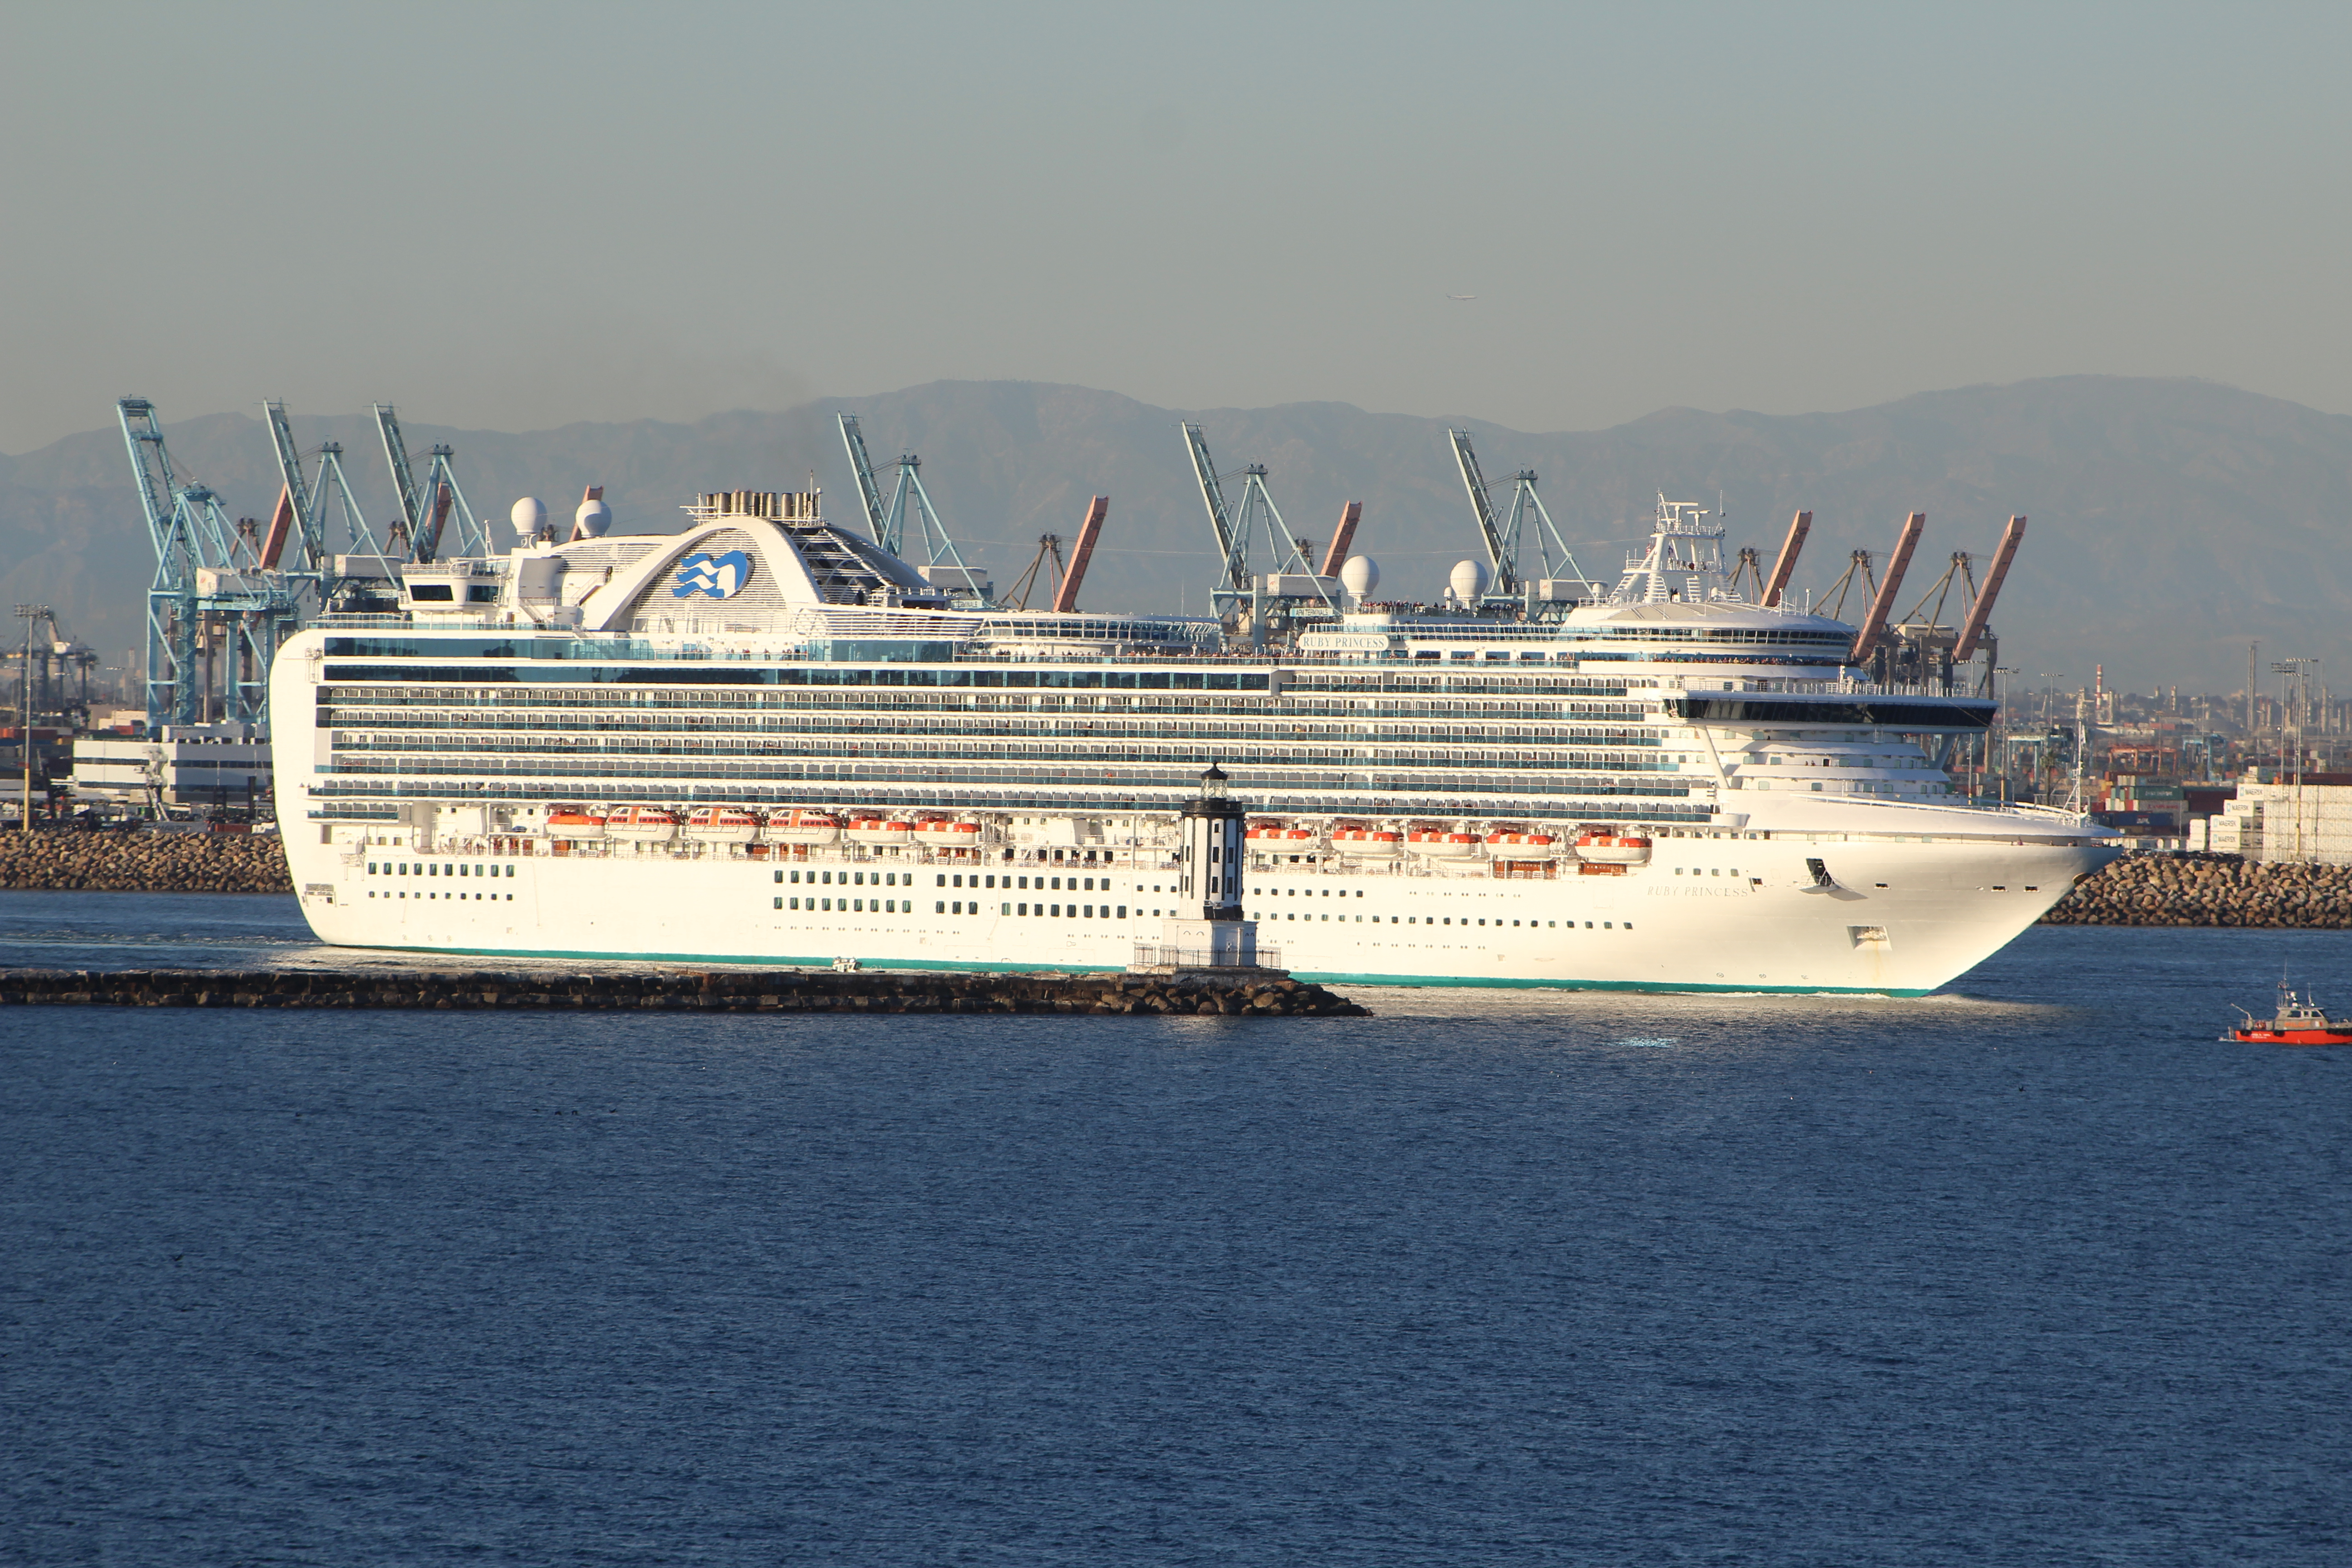 FileCruise Ship Departing Port Of Los Angeles Panoramio Jpg - Cruise ships los angeles